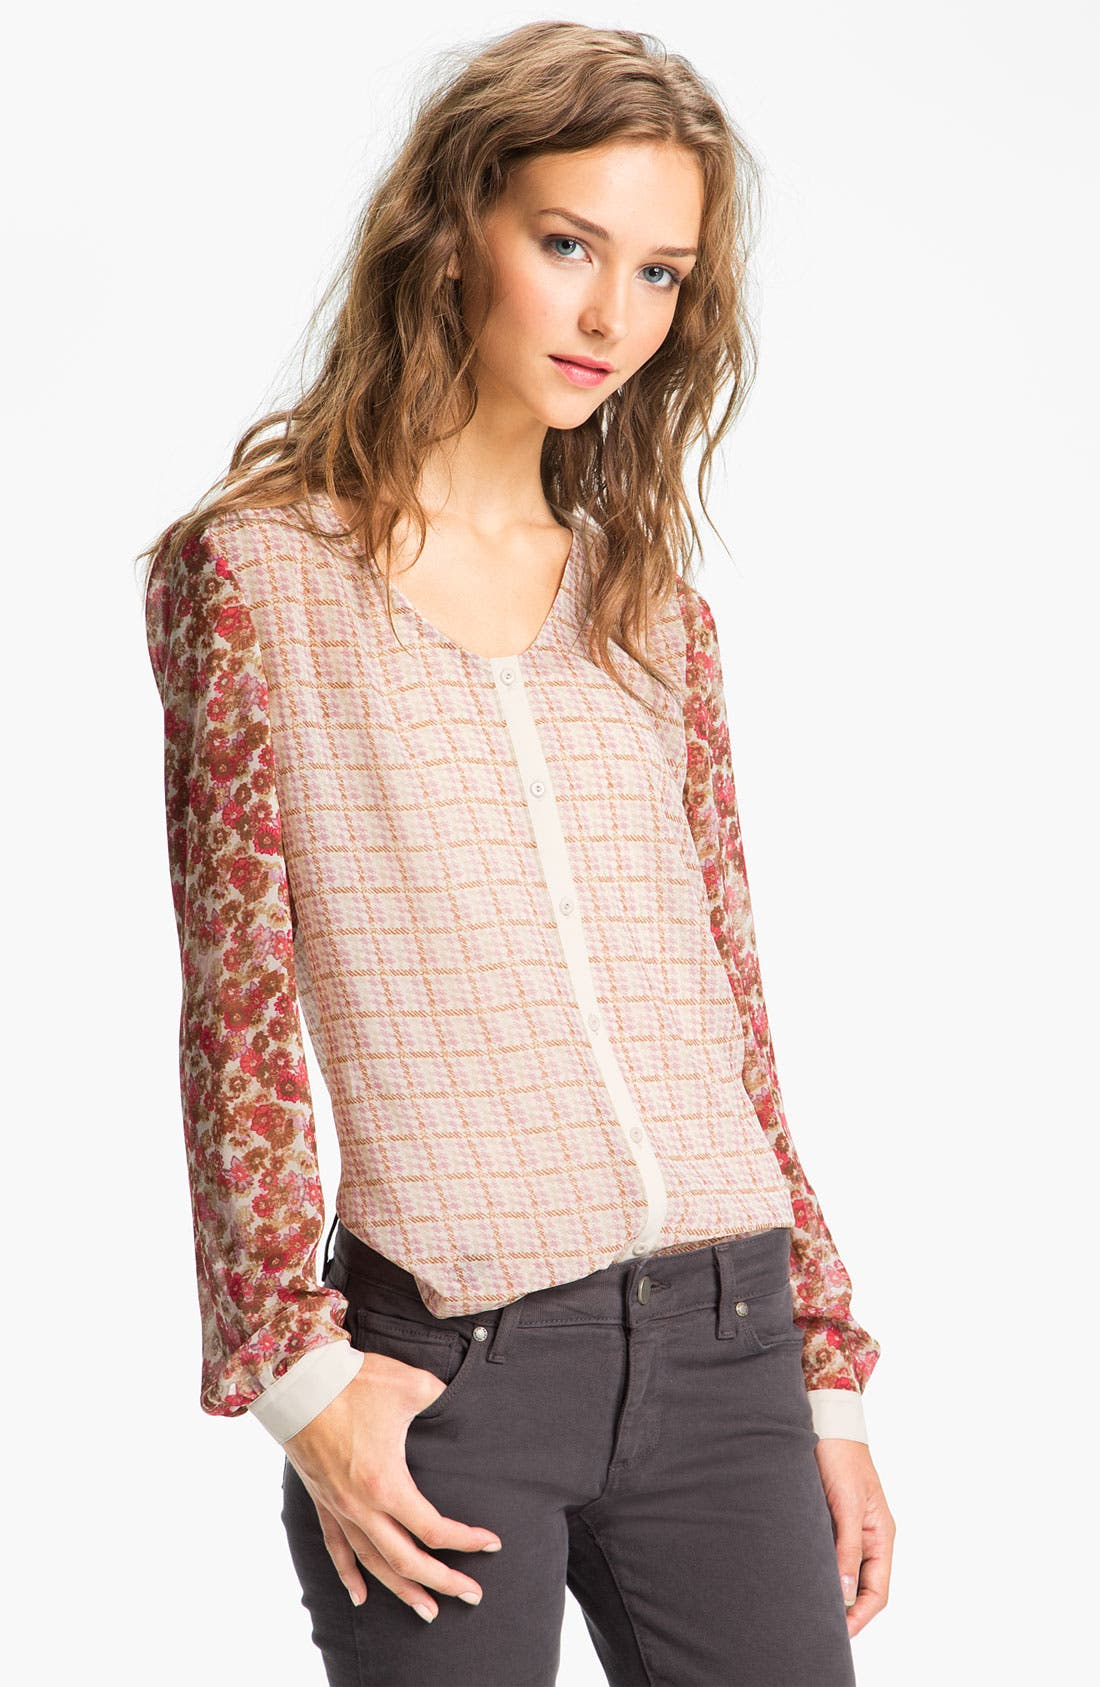 Alternate Image 1 Selected - Hinge Mix Print Chiffon Blouse